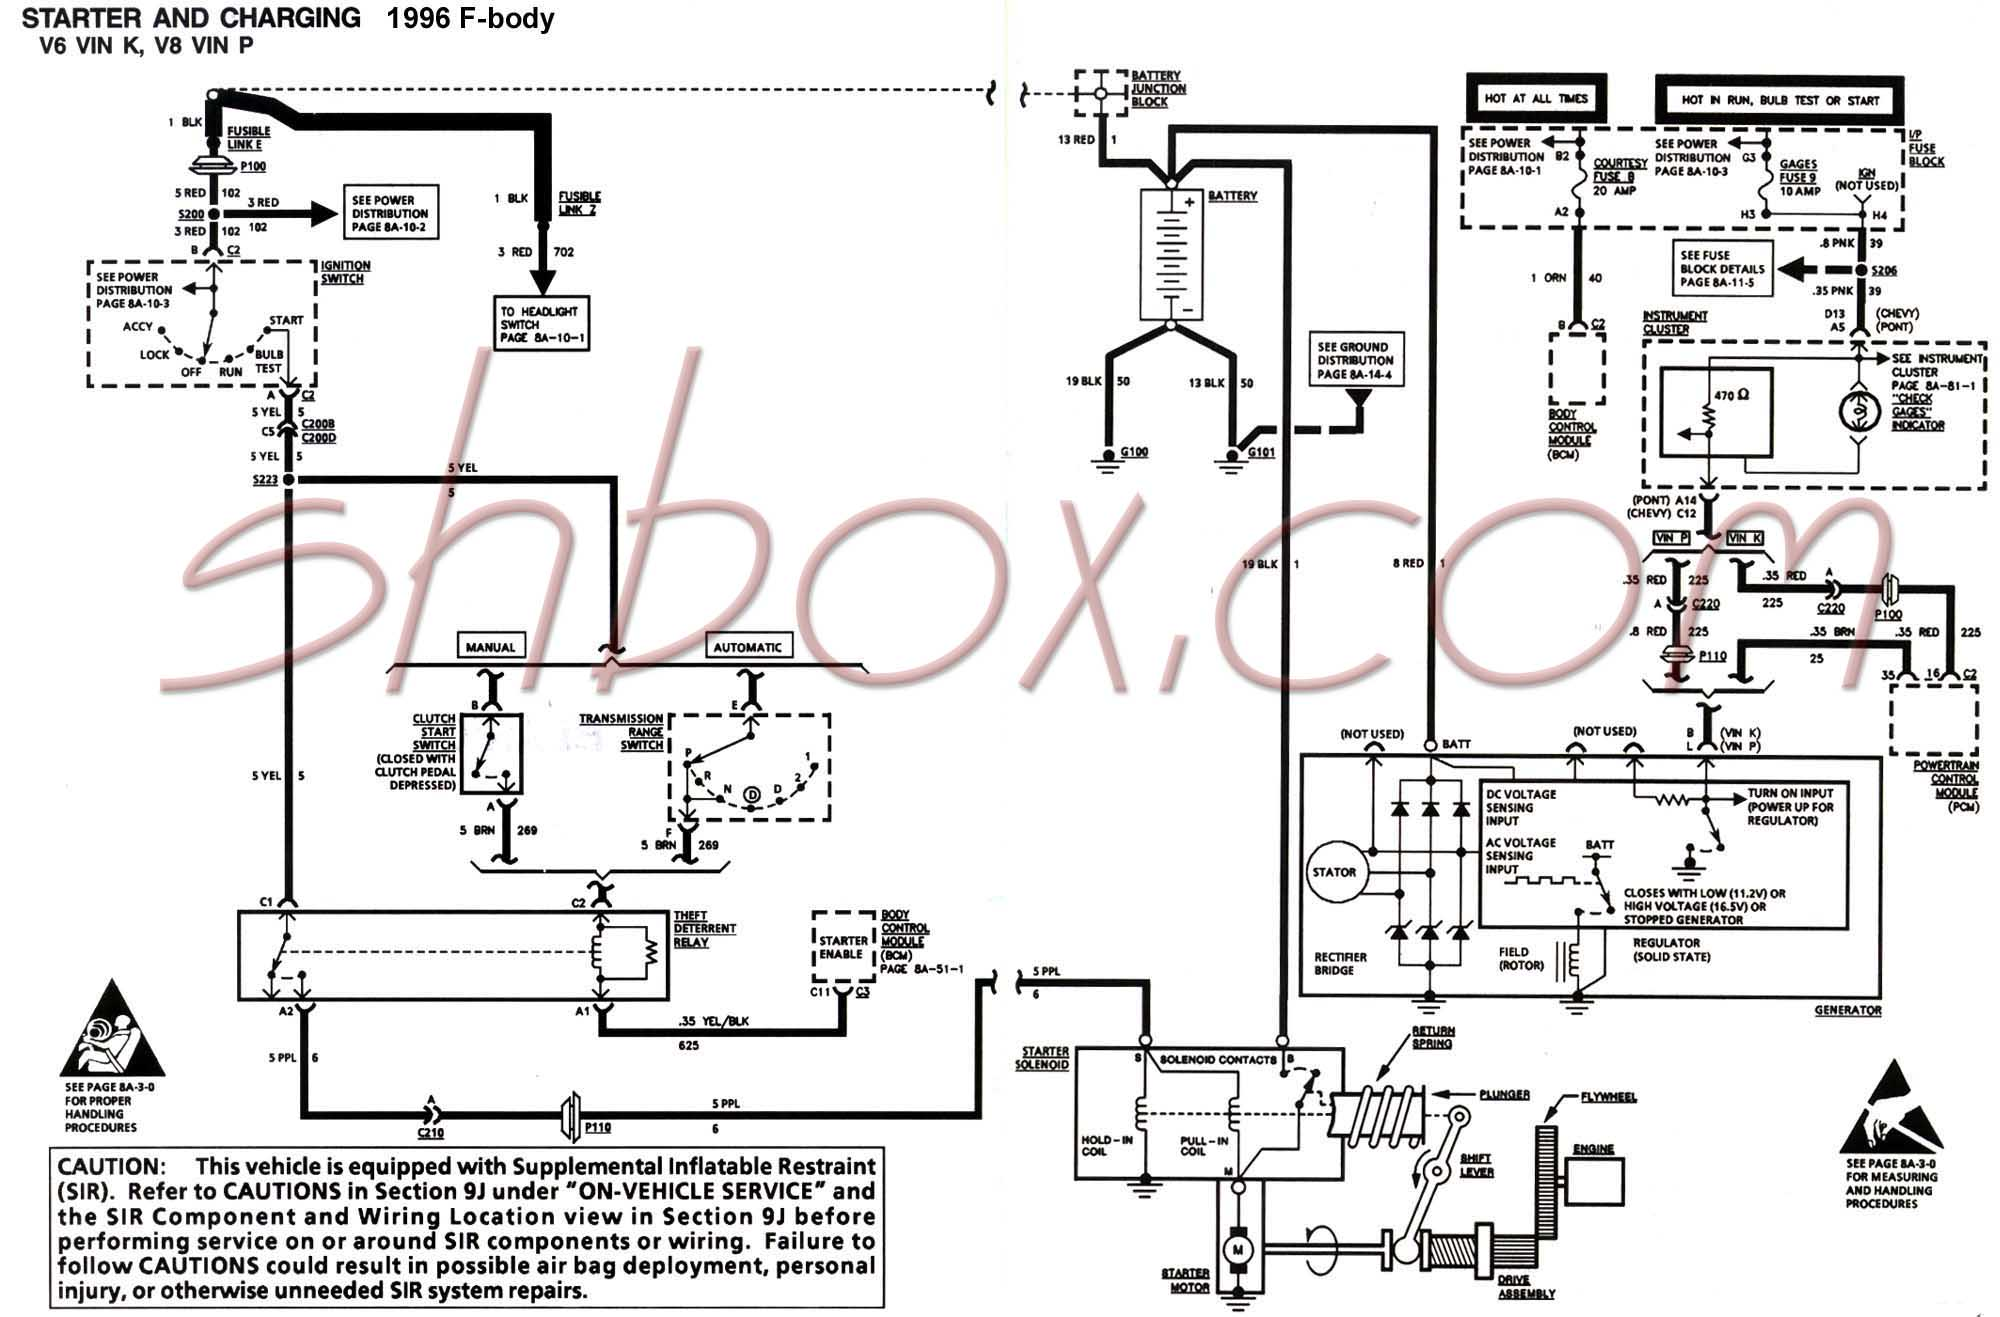 starter_charging_96 4th gen lt1 f body tech aids Turn Signal Wiring Diagram at gsmx.co